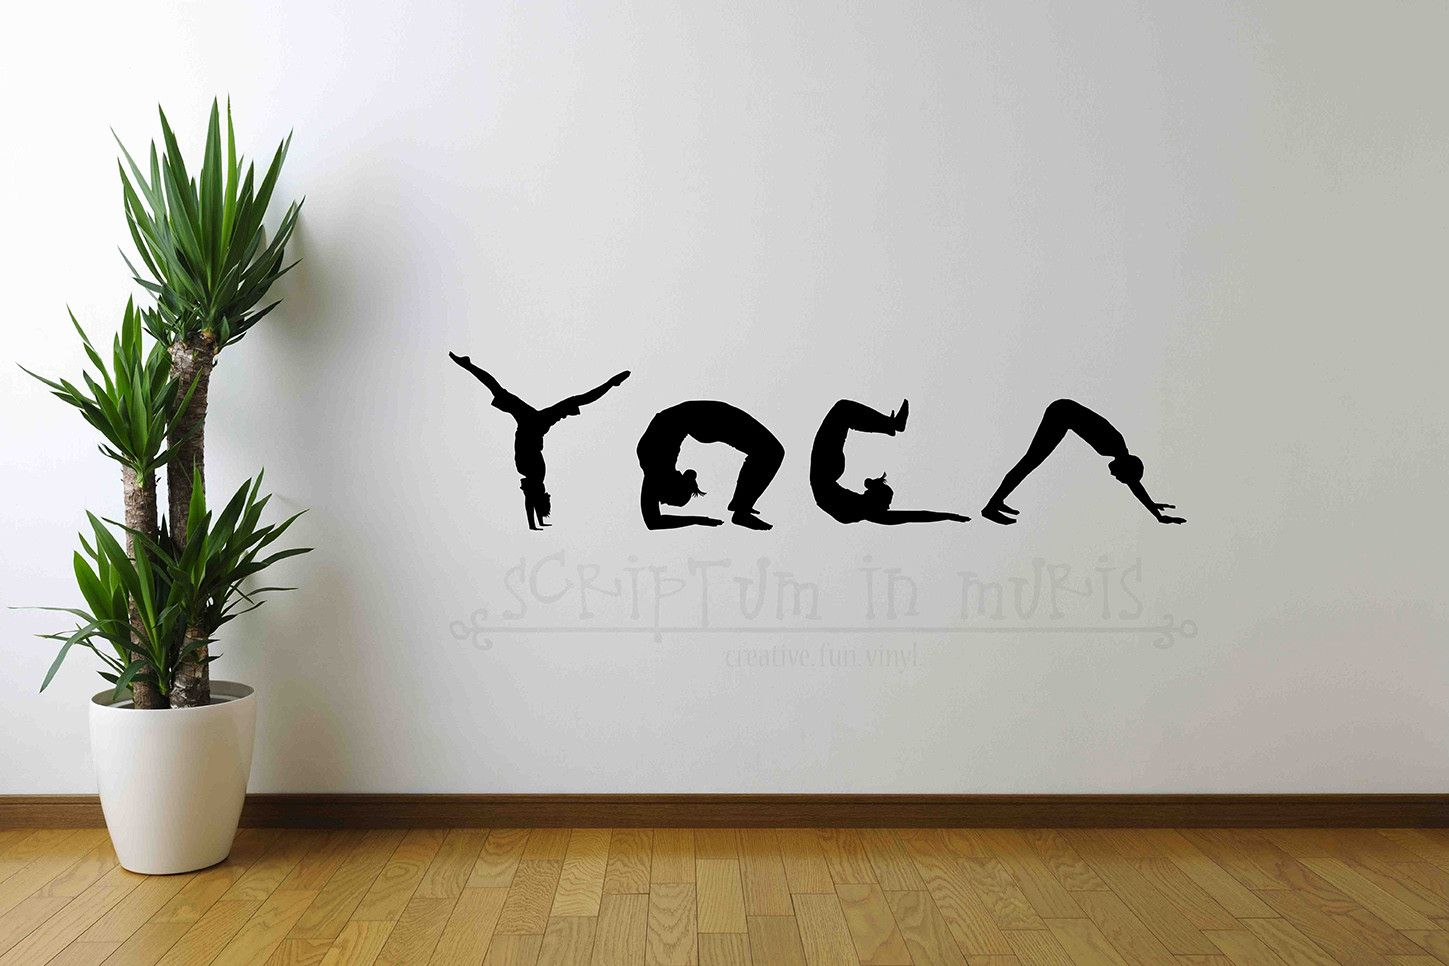 Yoga Spelled In Silhouette Studio Wall Vinyl Decal Wall Vinyl - Yoga studio wall decals